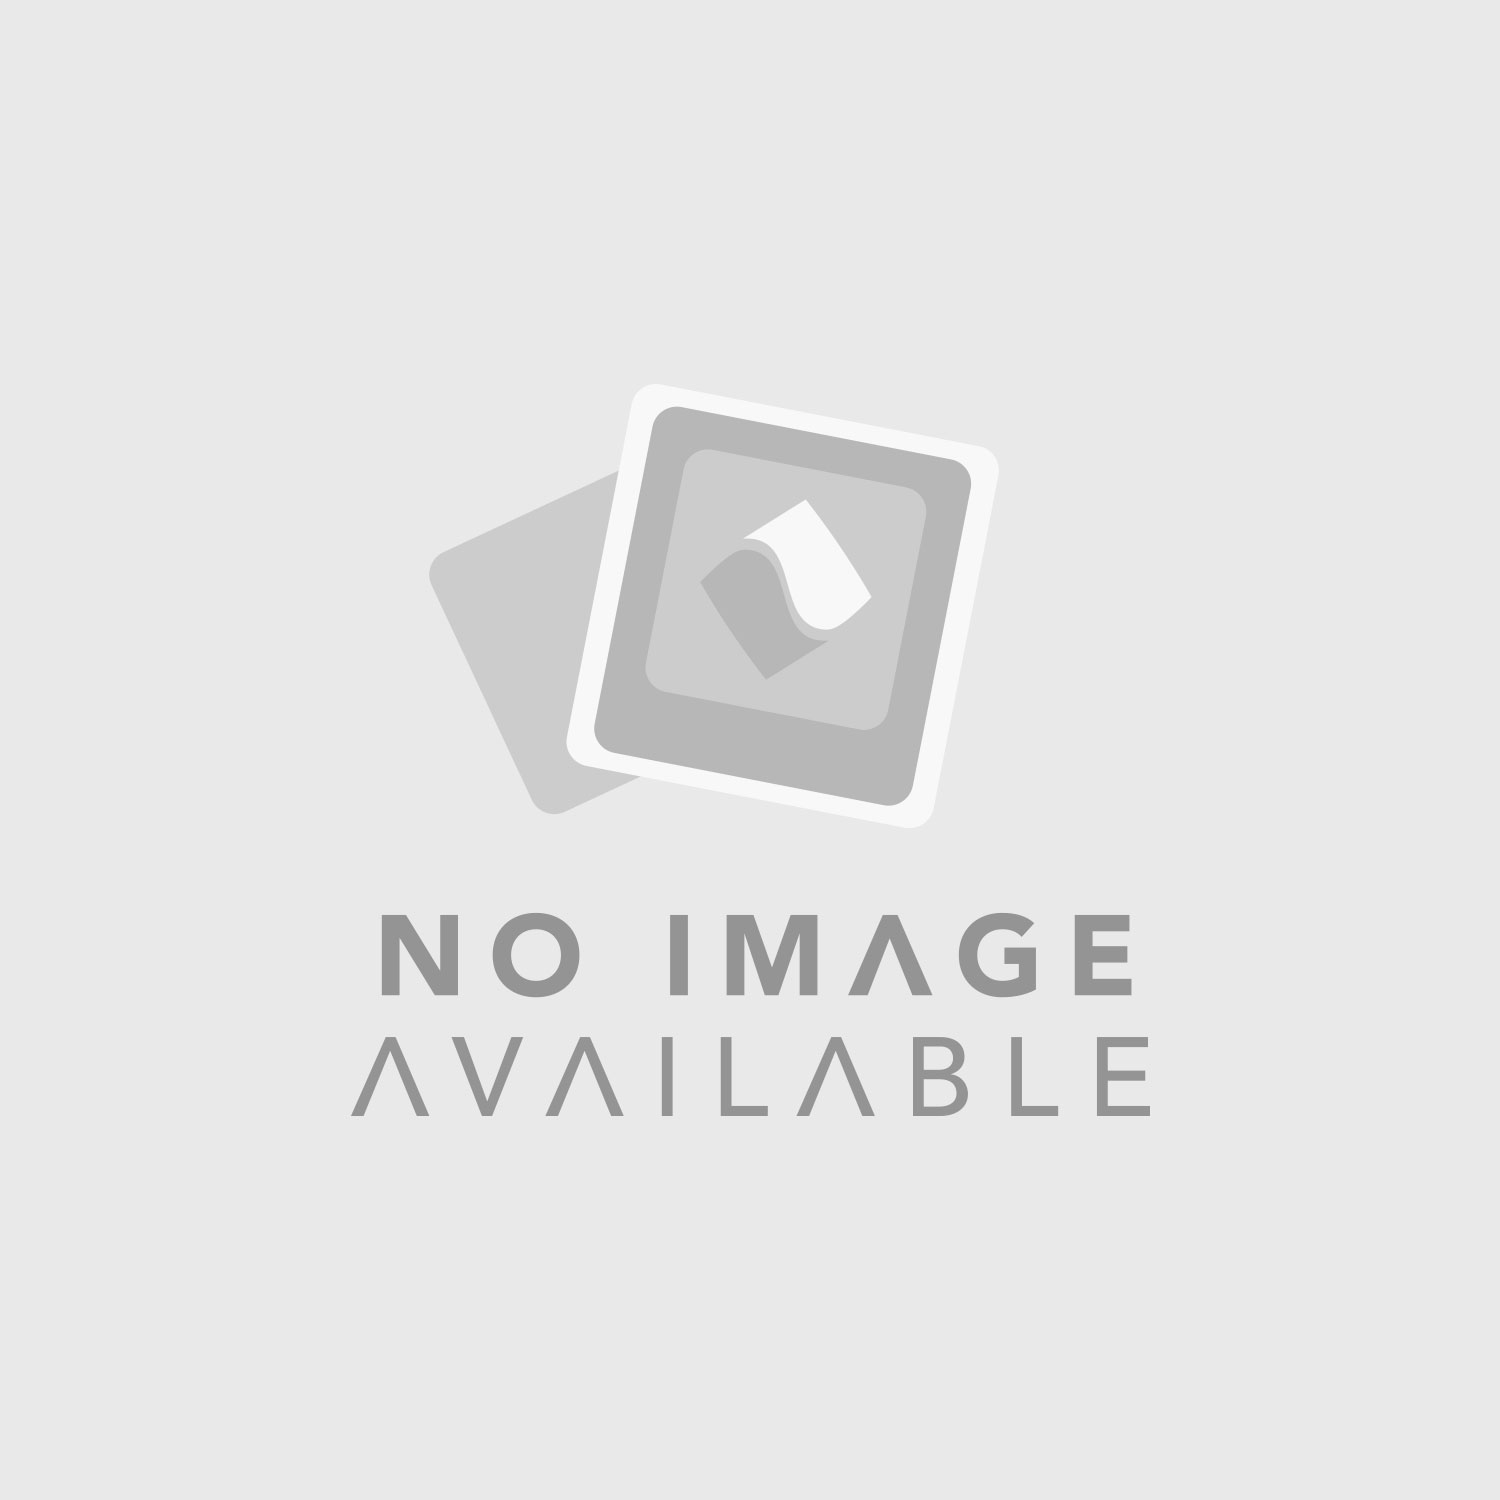 Audio-Technica ATW-901A/H System 9 Wireless System (Headworn Microphone)